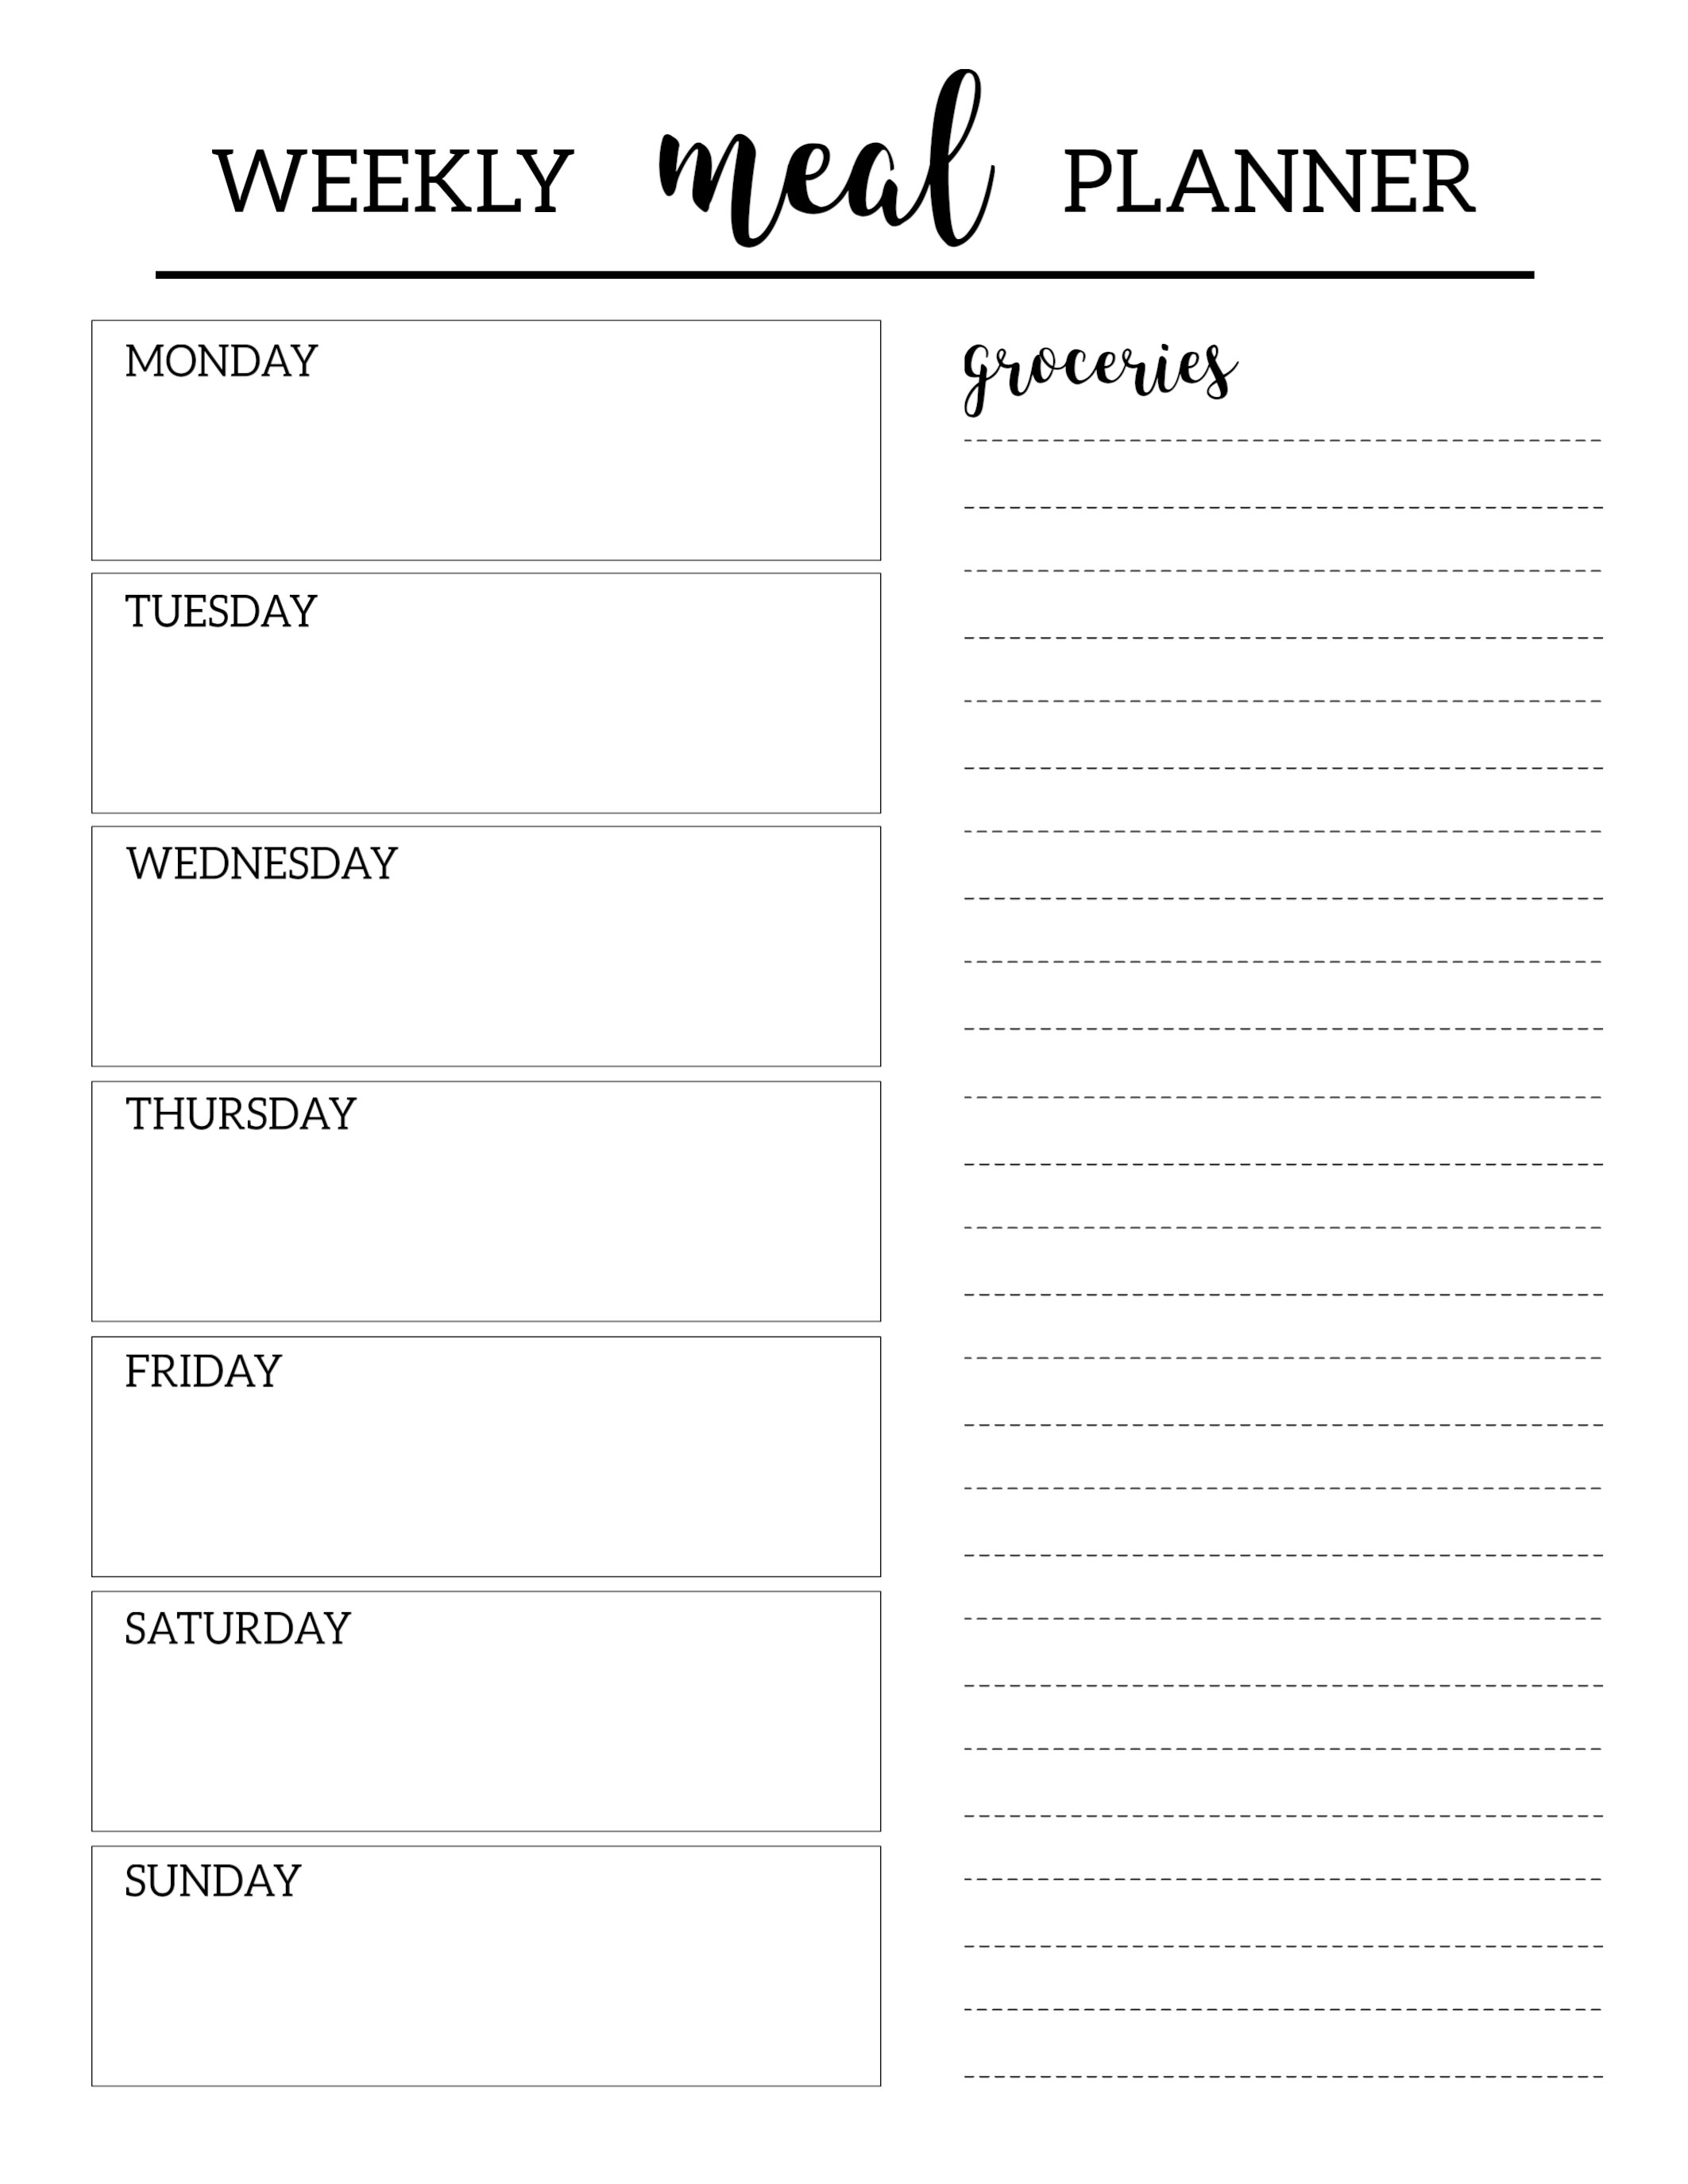 Free Printable Shopping List And Meal Planner - 9.8.kaartenstemp.nl • - Free Printable Grocery List And Meal Planner